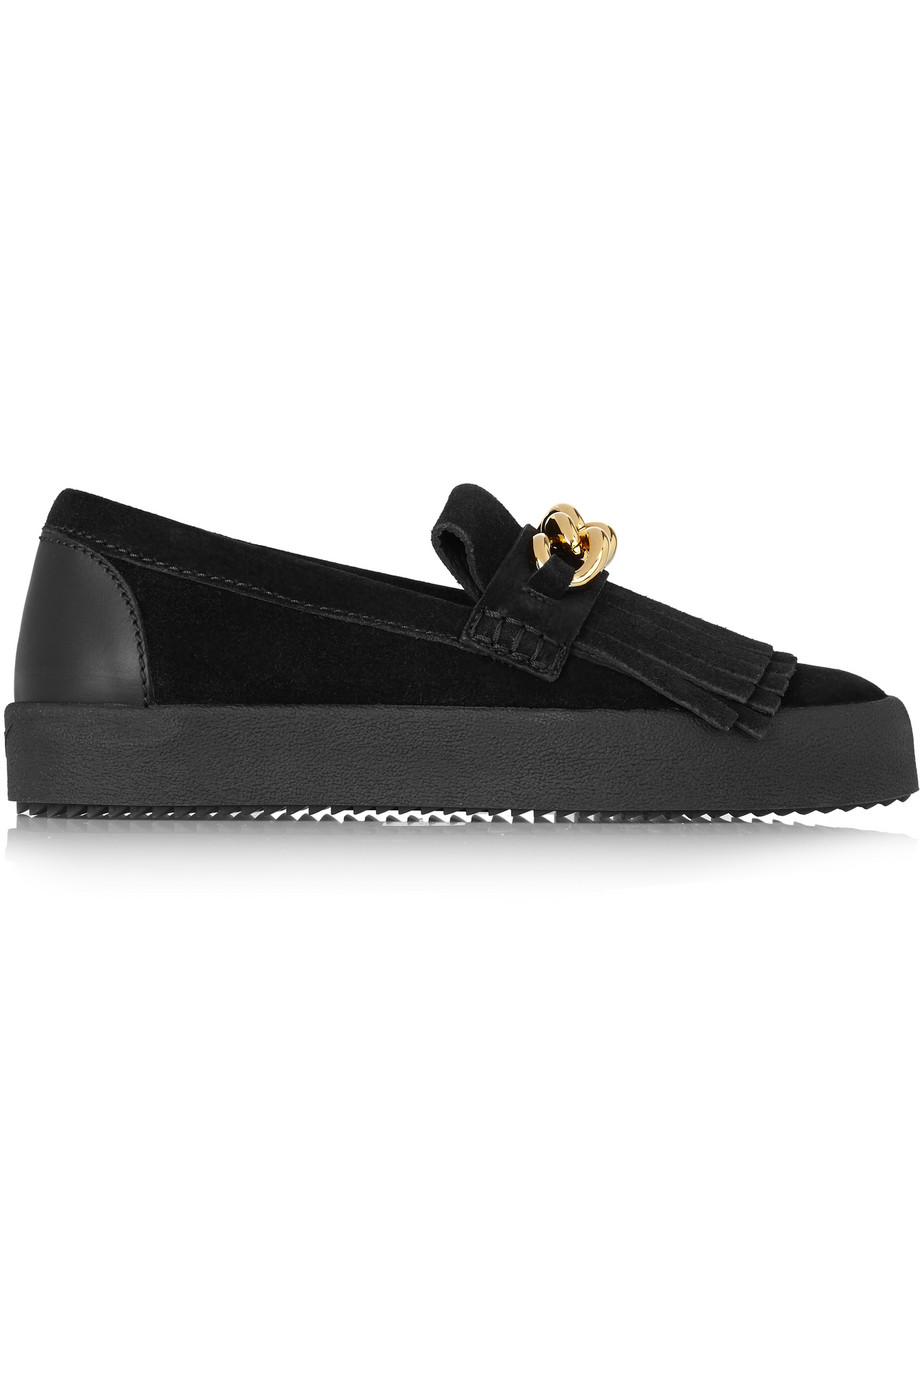 Giuseppe Zanotti Chain-Embellished Suede Loafers, Black, Women's US Size: 5.5, Size: 36